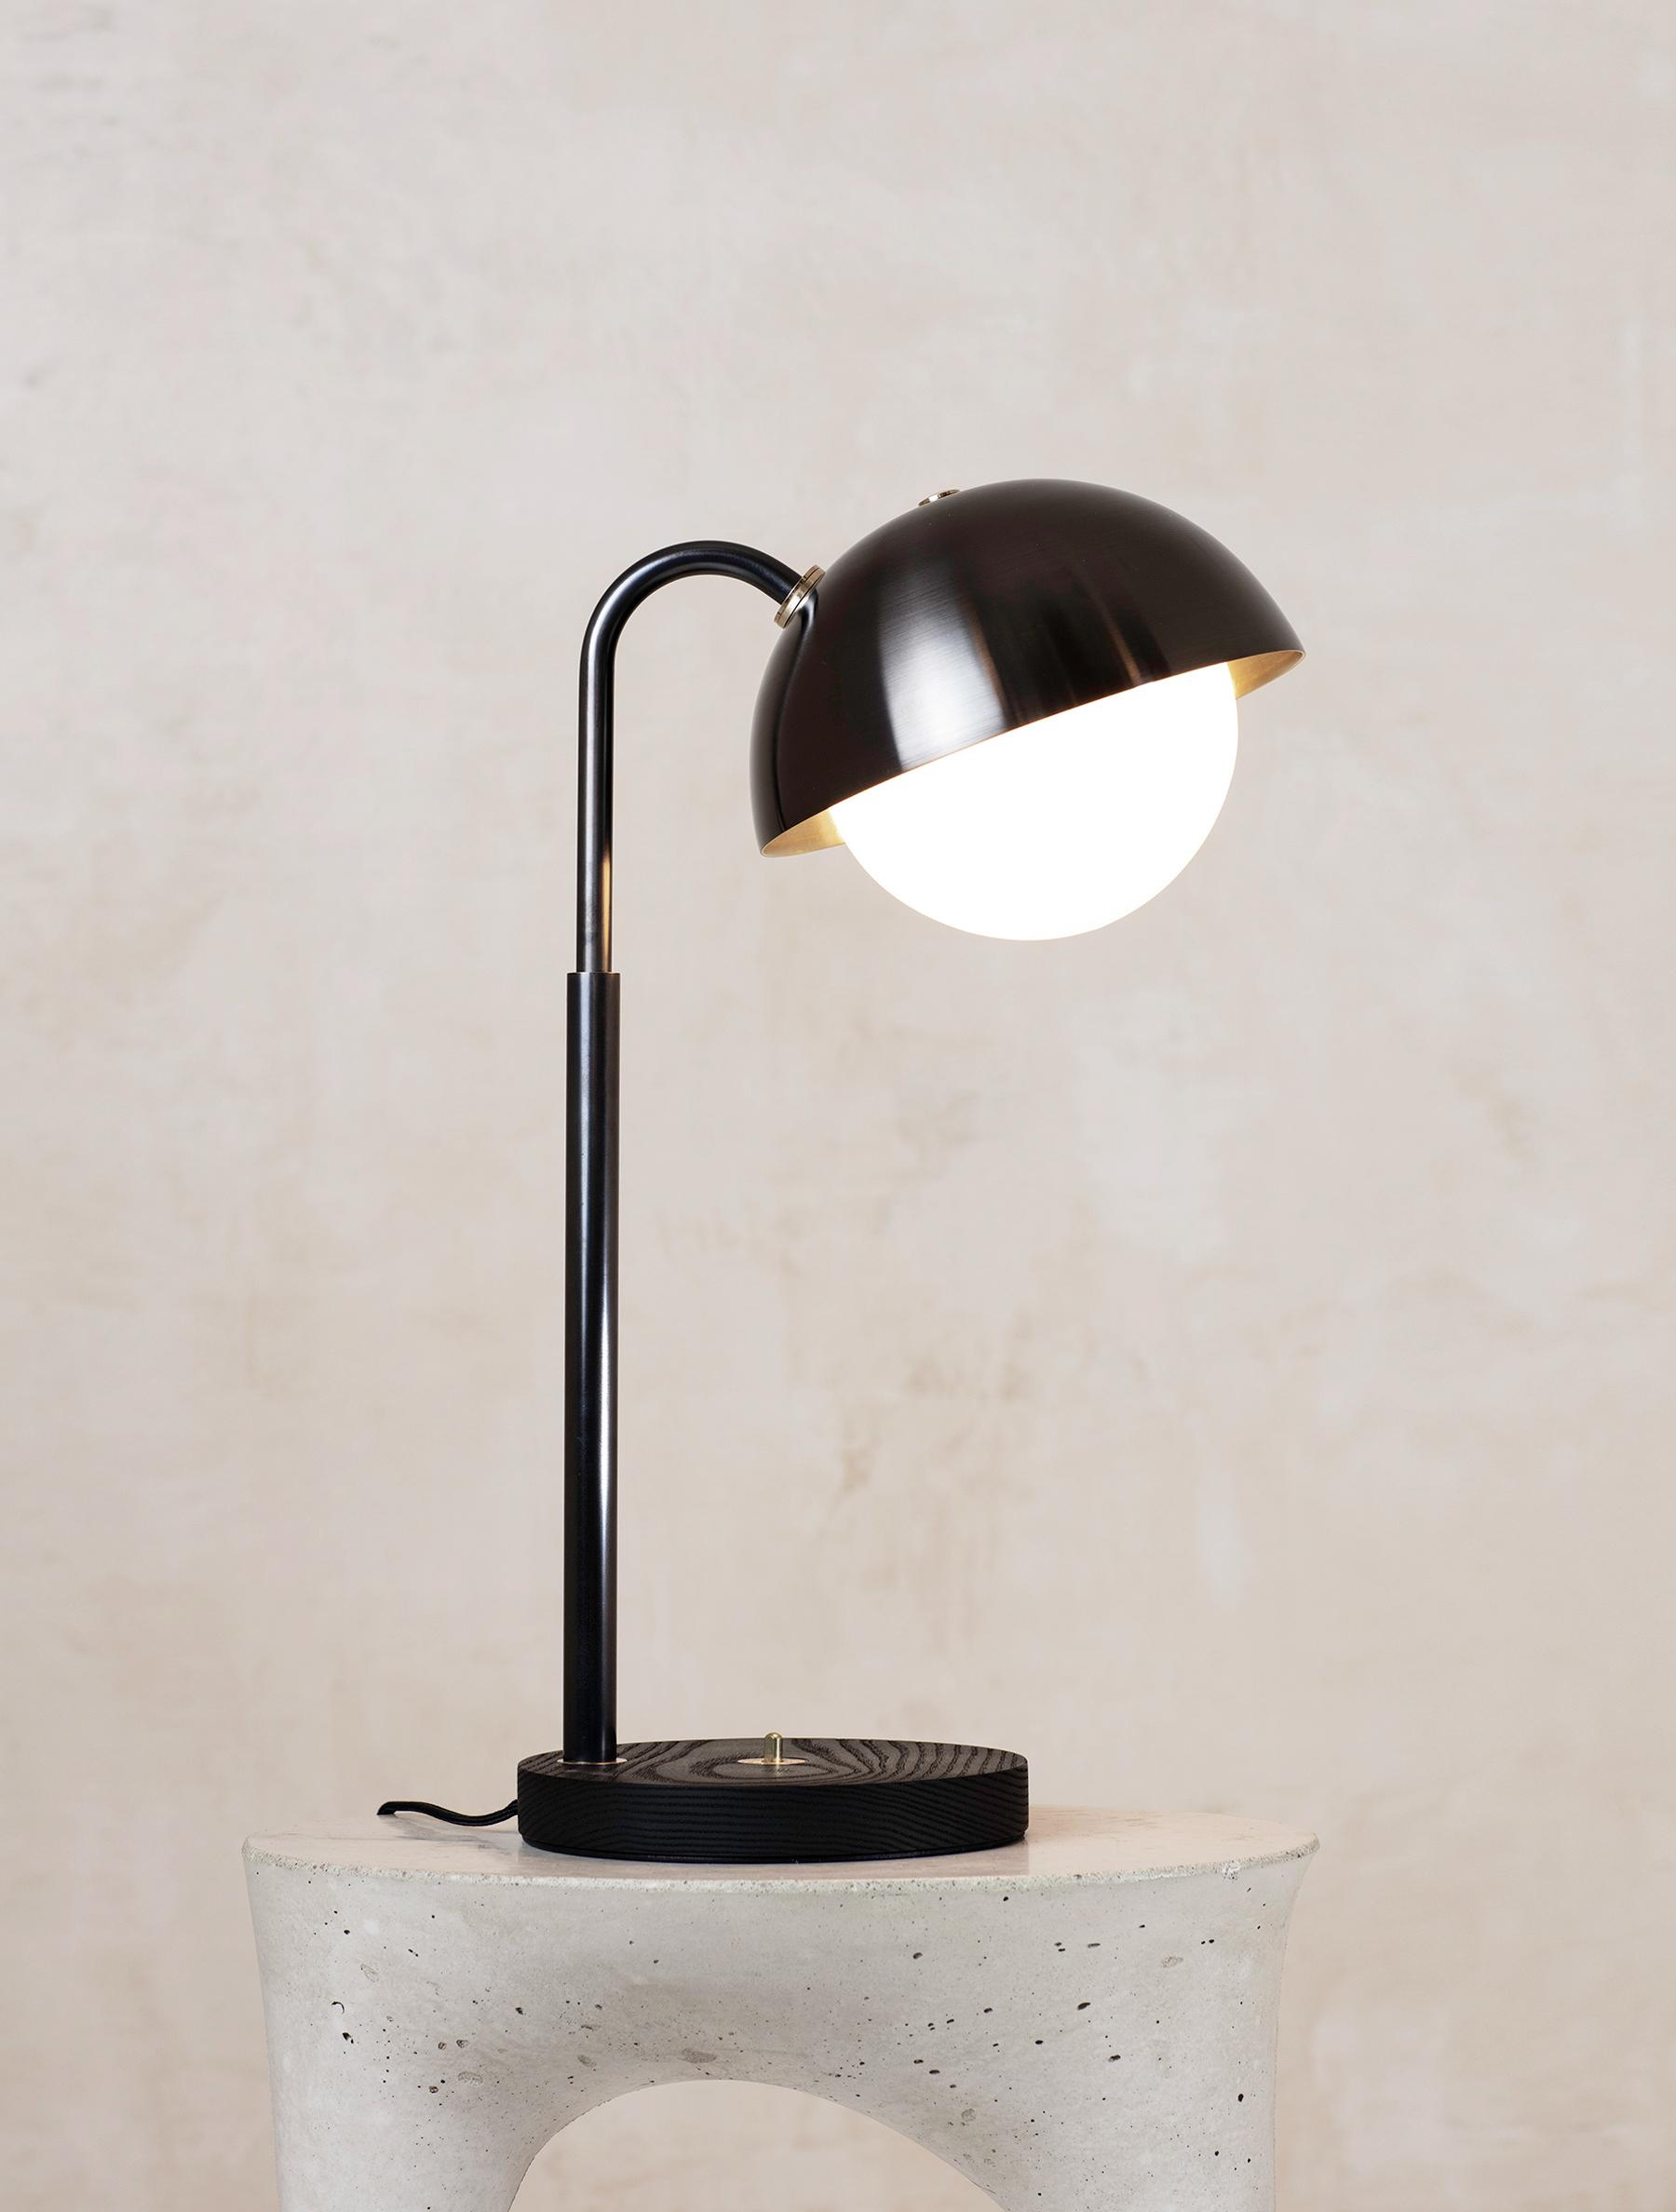 Dome Table Lamp shown in Blackened Brass, Blackened Ash, Opal Globe